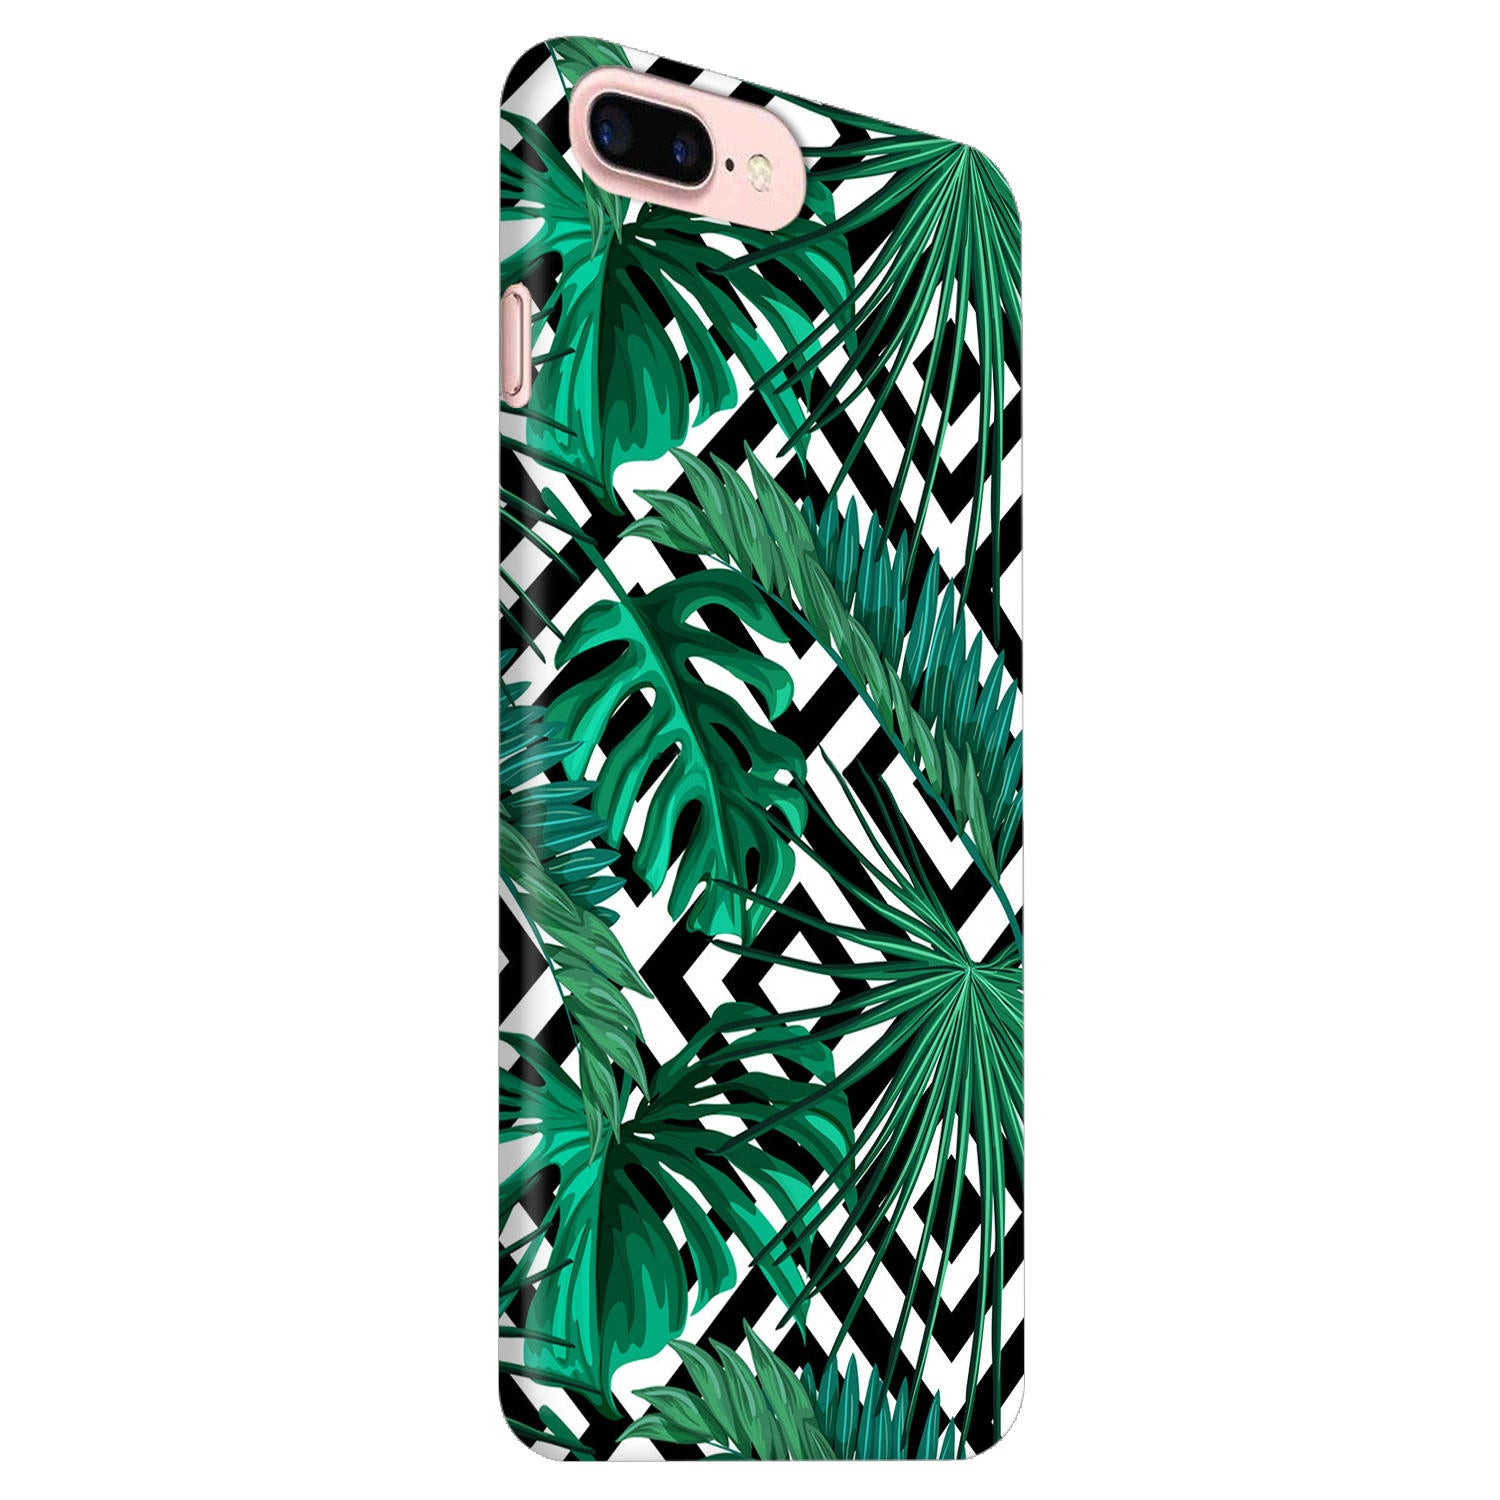 Tropical Leaves With Diamond Pattern iPhone 8 Plus Mobile Cover Case - MADANYU